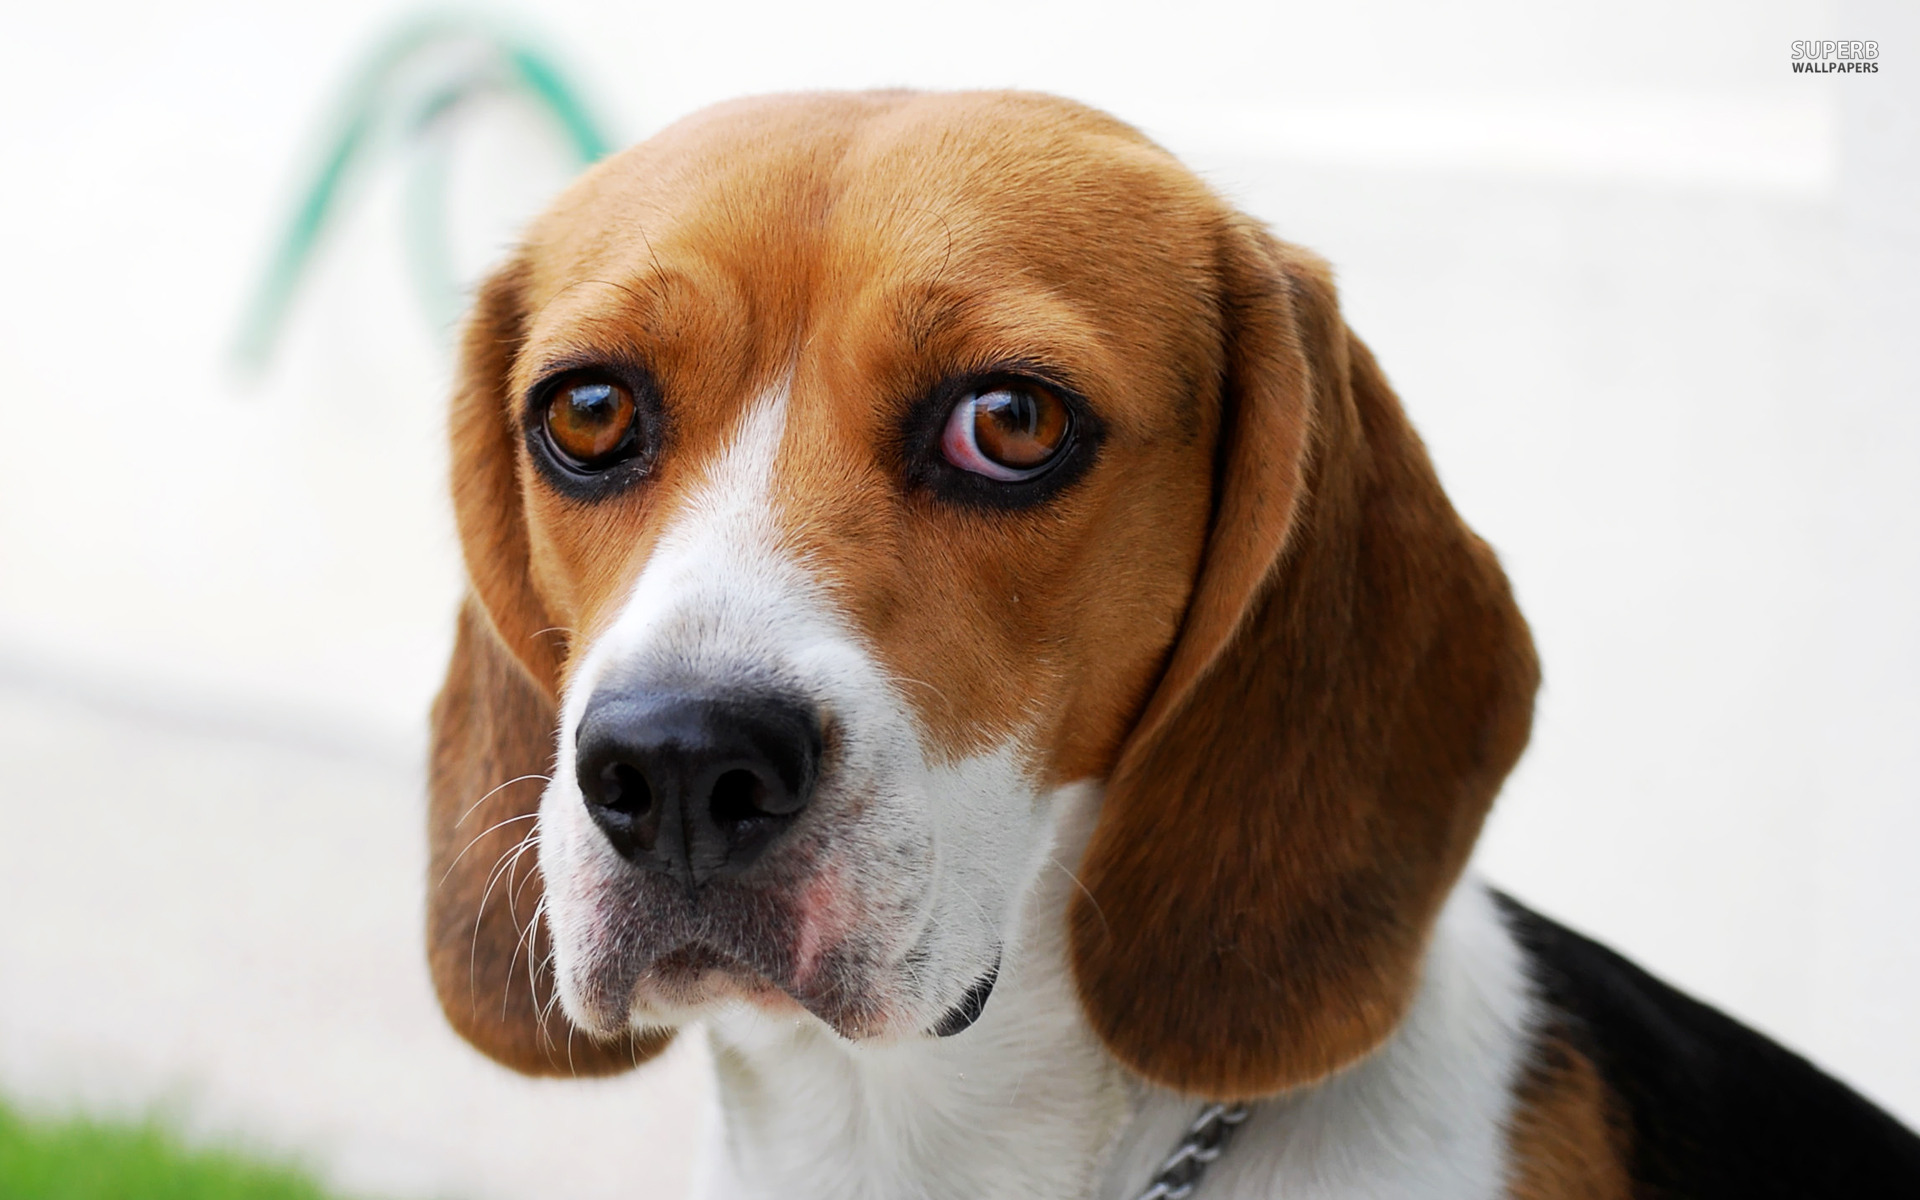 Dog beagle guilty wallpapers and images   wallpapers pictures photos 1920x1200